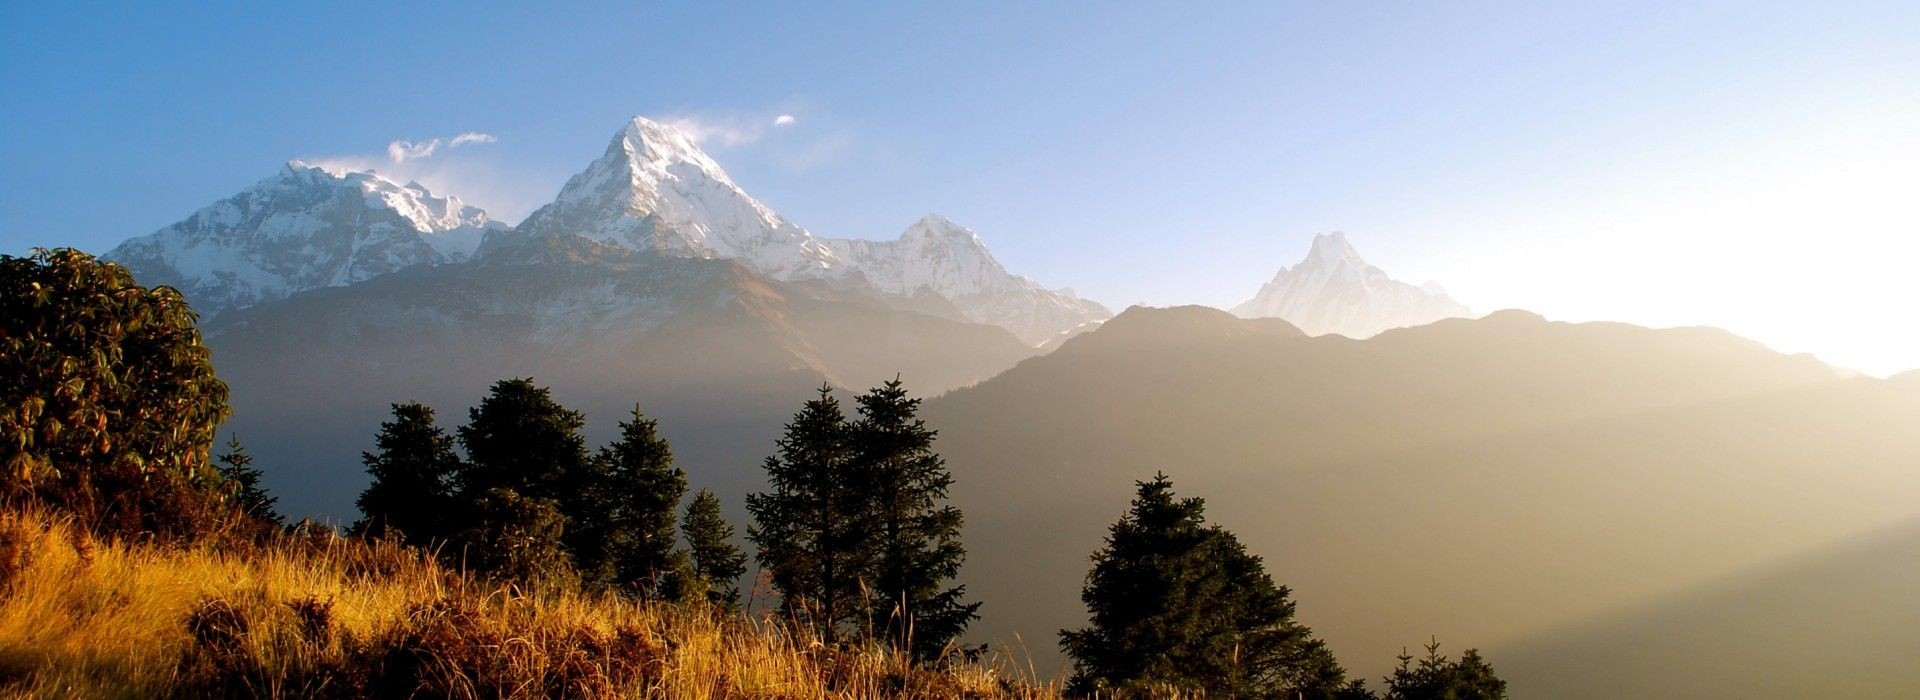 View from atop Poonhill on the Poonhill trek in Nepal.